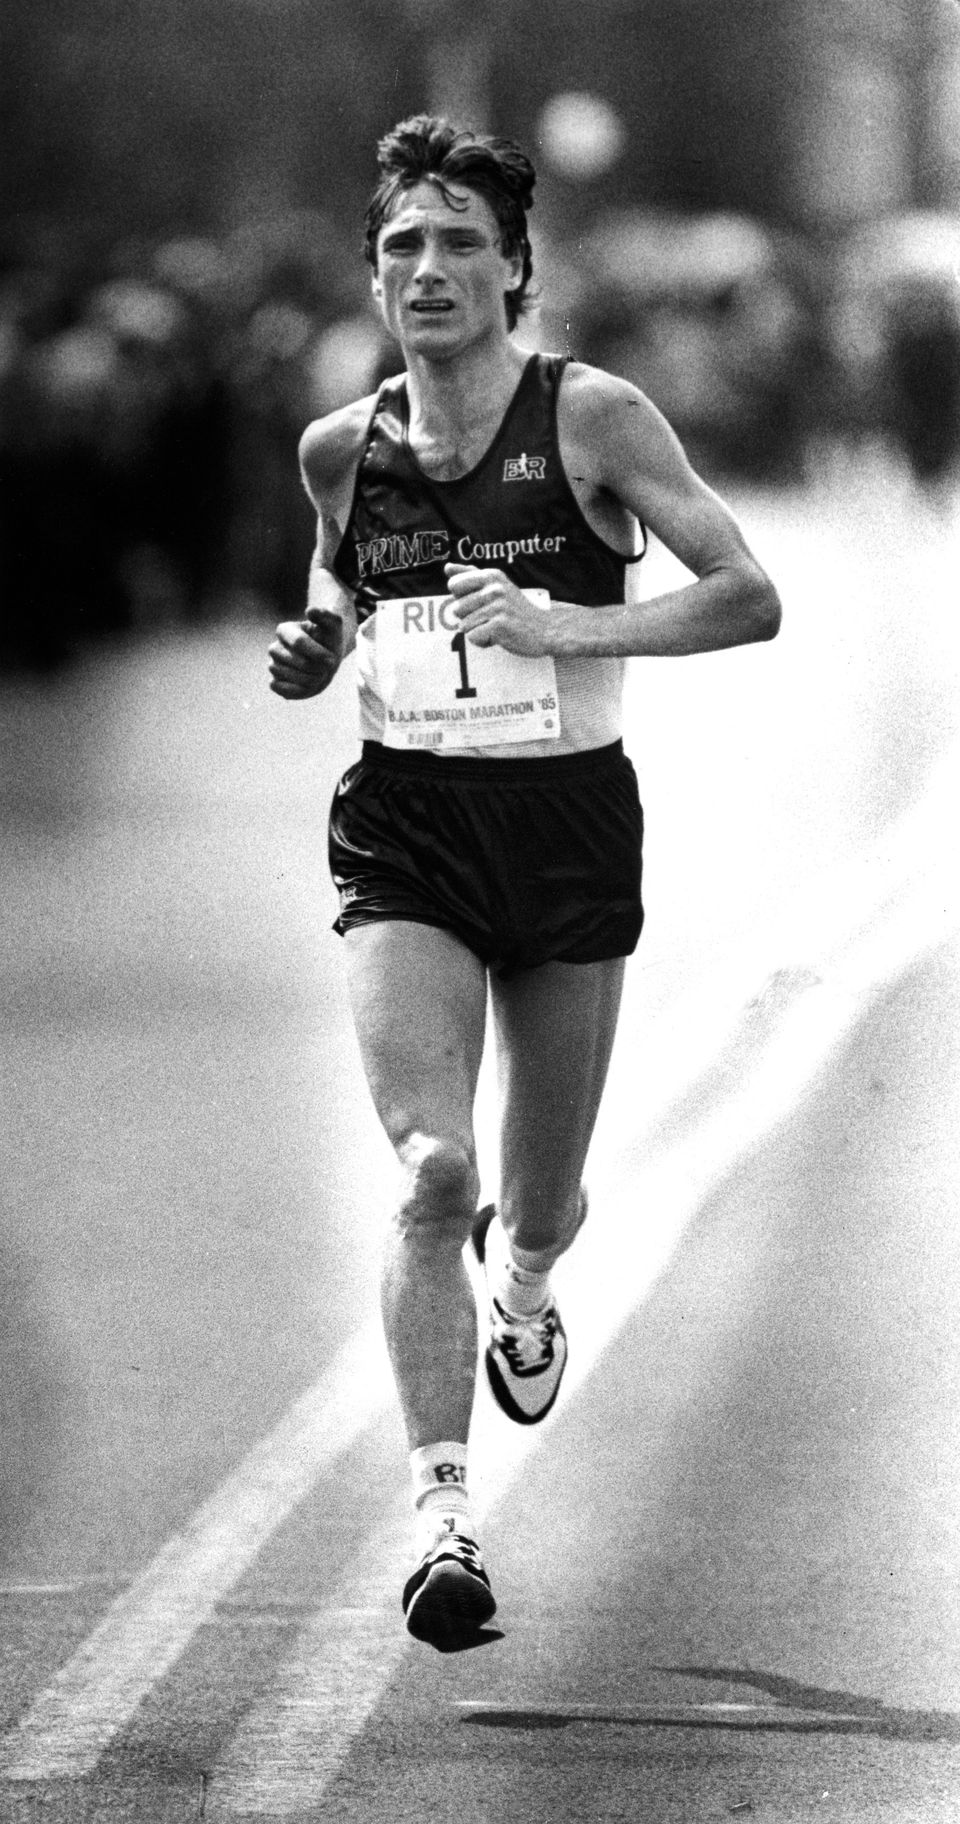 Geoff Smith, the 1985 winner, now works for a Rhode Island firm selling medals to races.